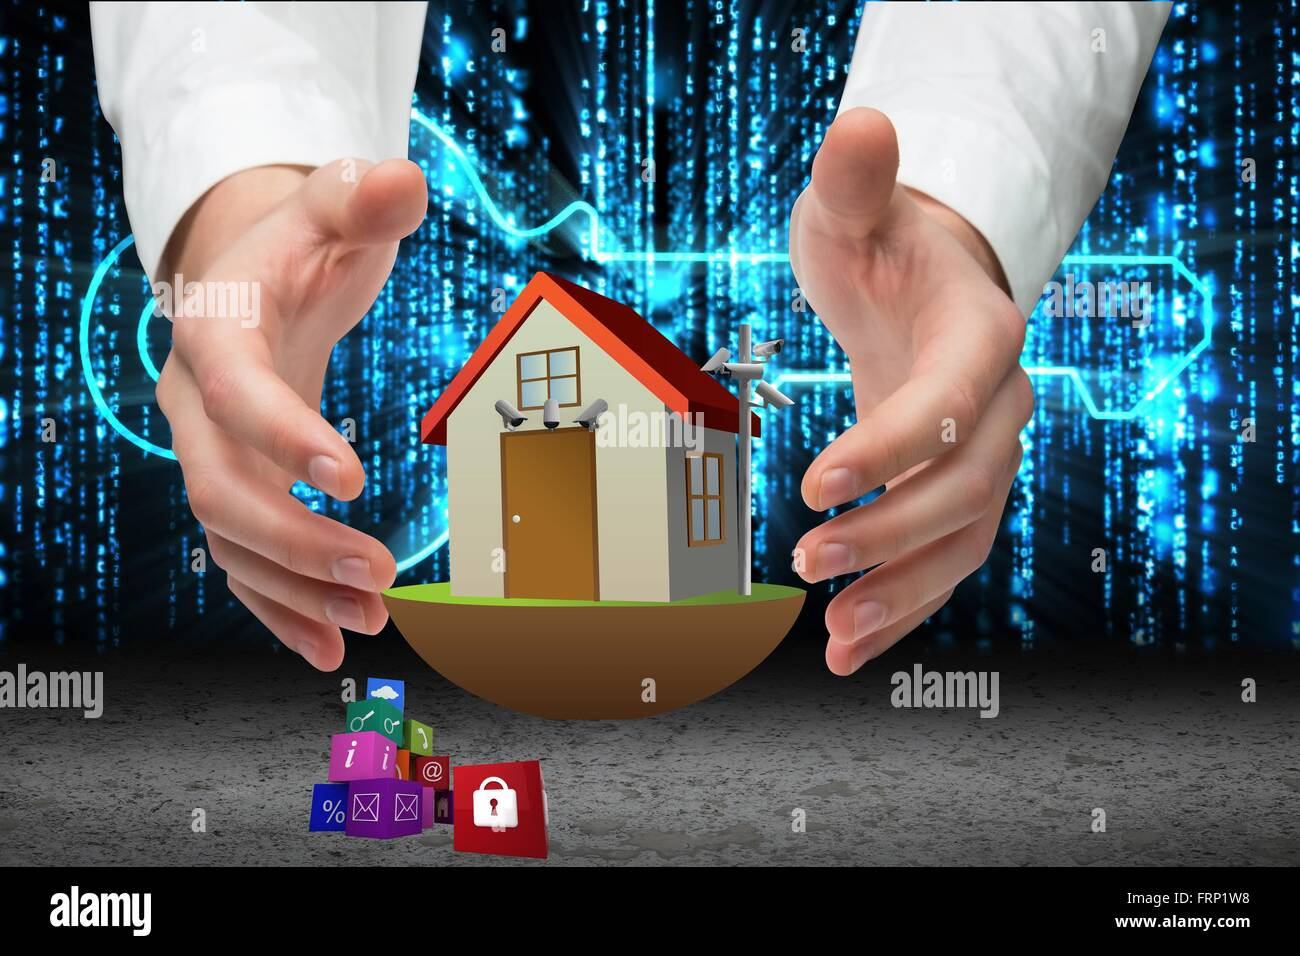 CCTV cameras controlling home security - Stock Image